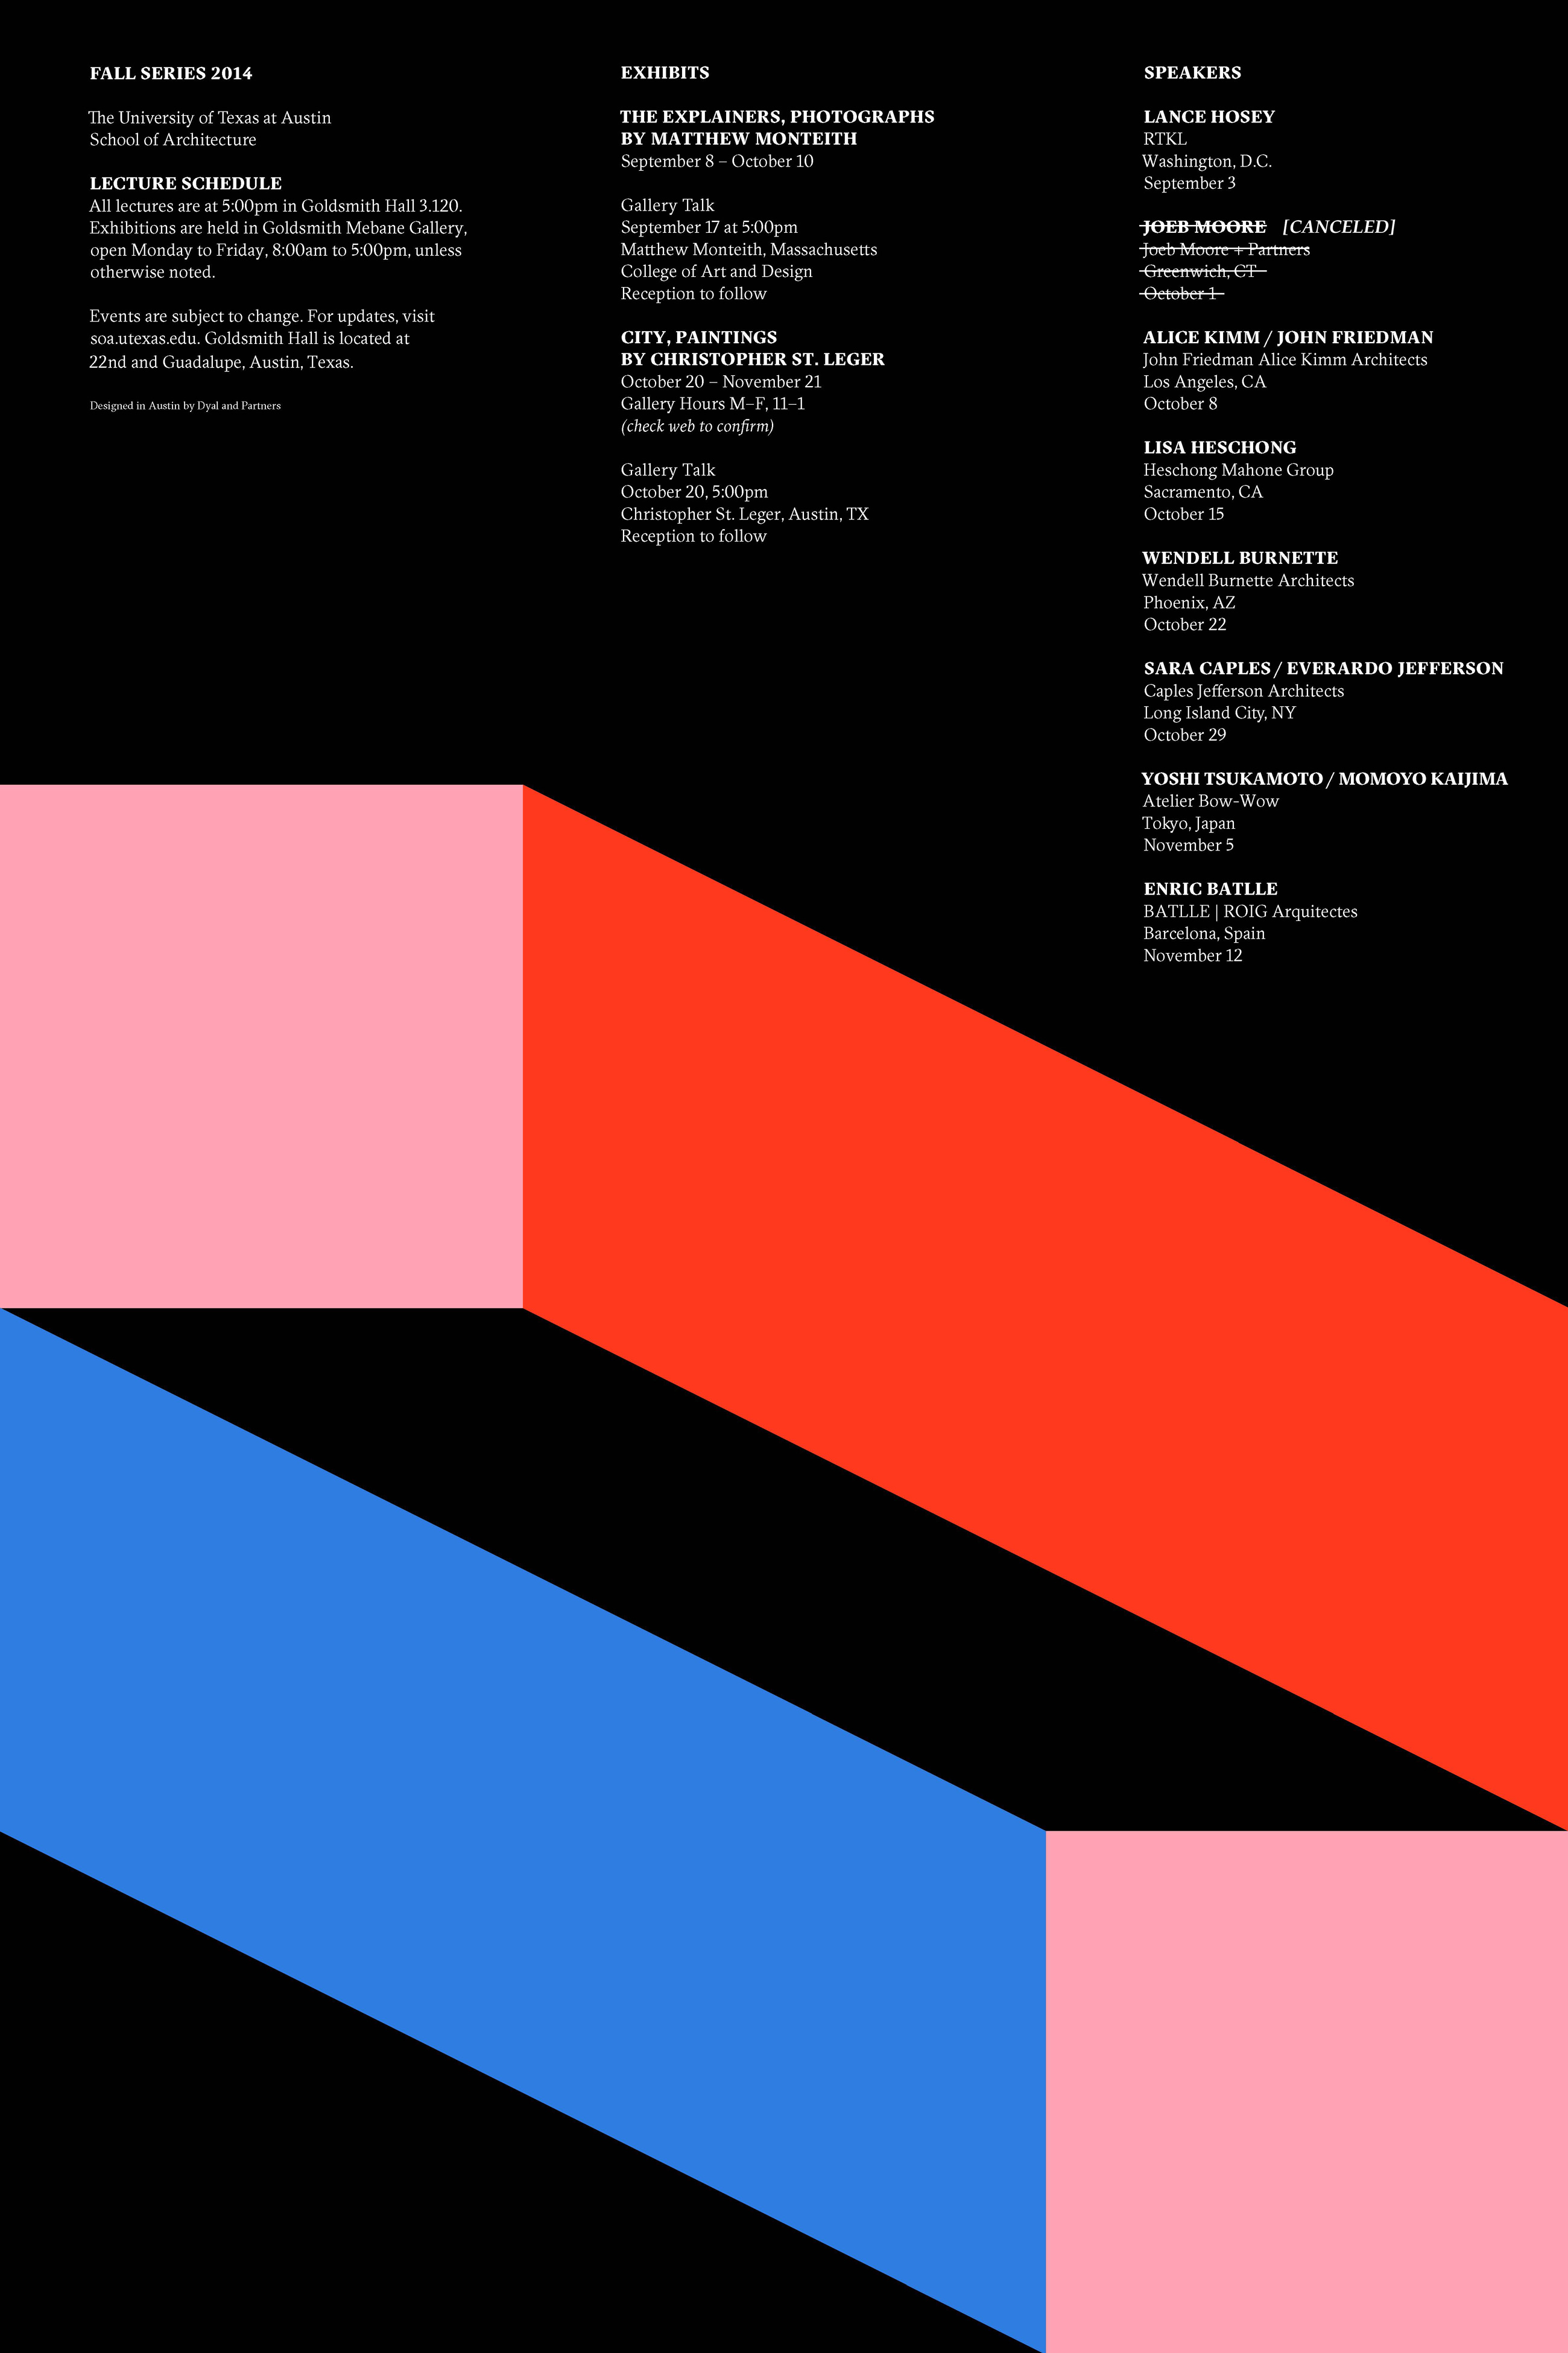 Fall 2014 Lectures and Exhibits Poster  @UTSOA